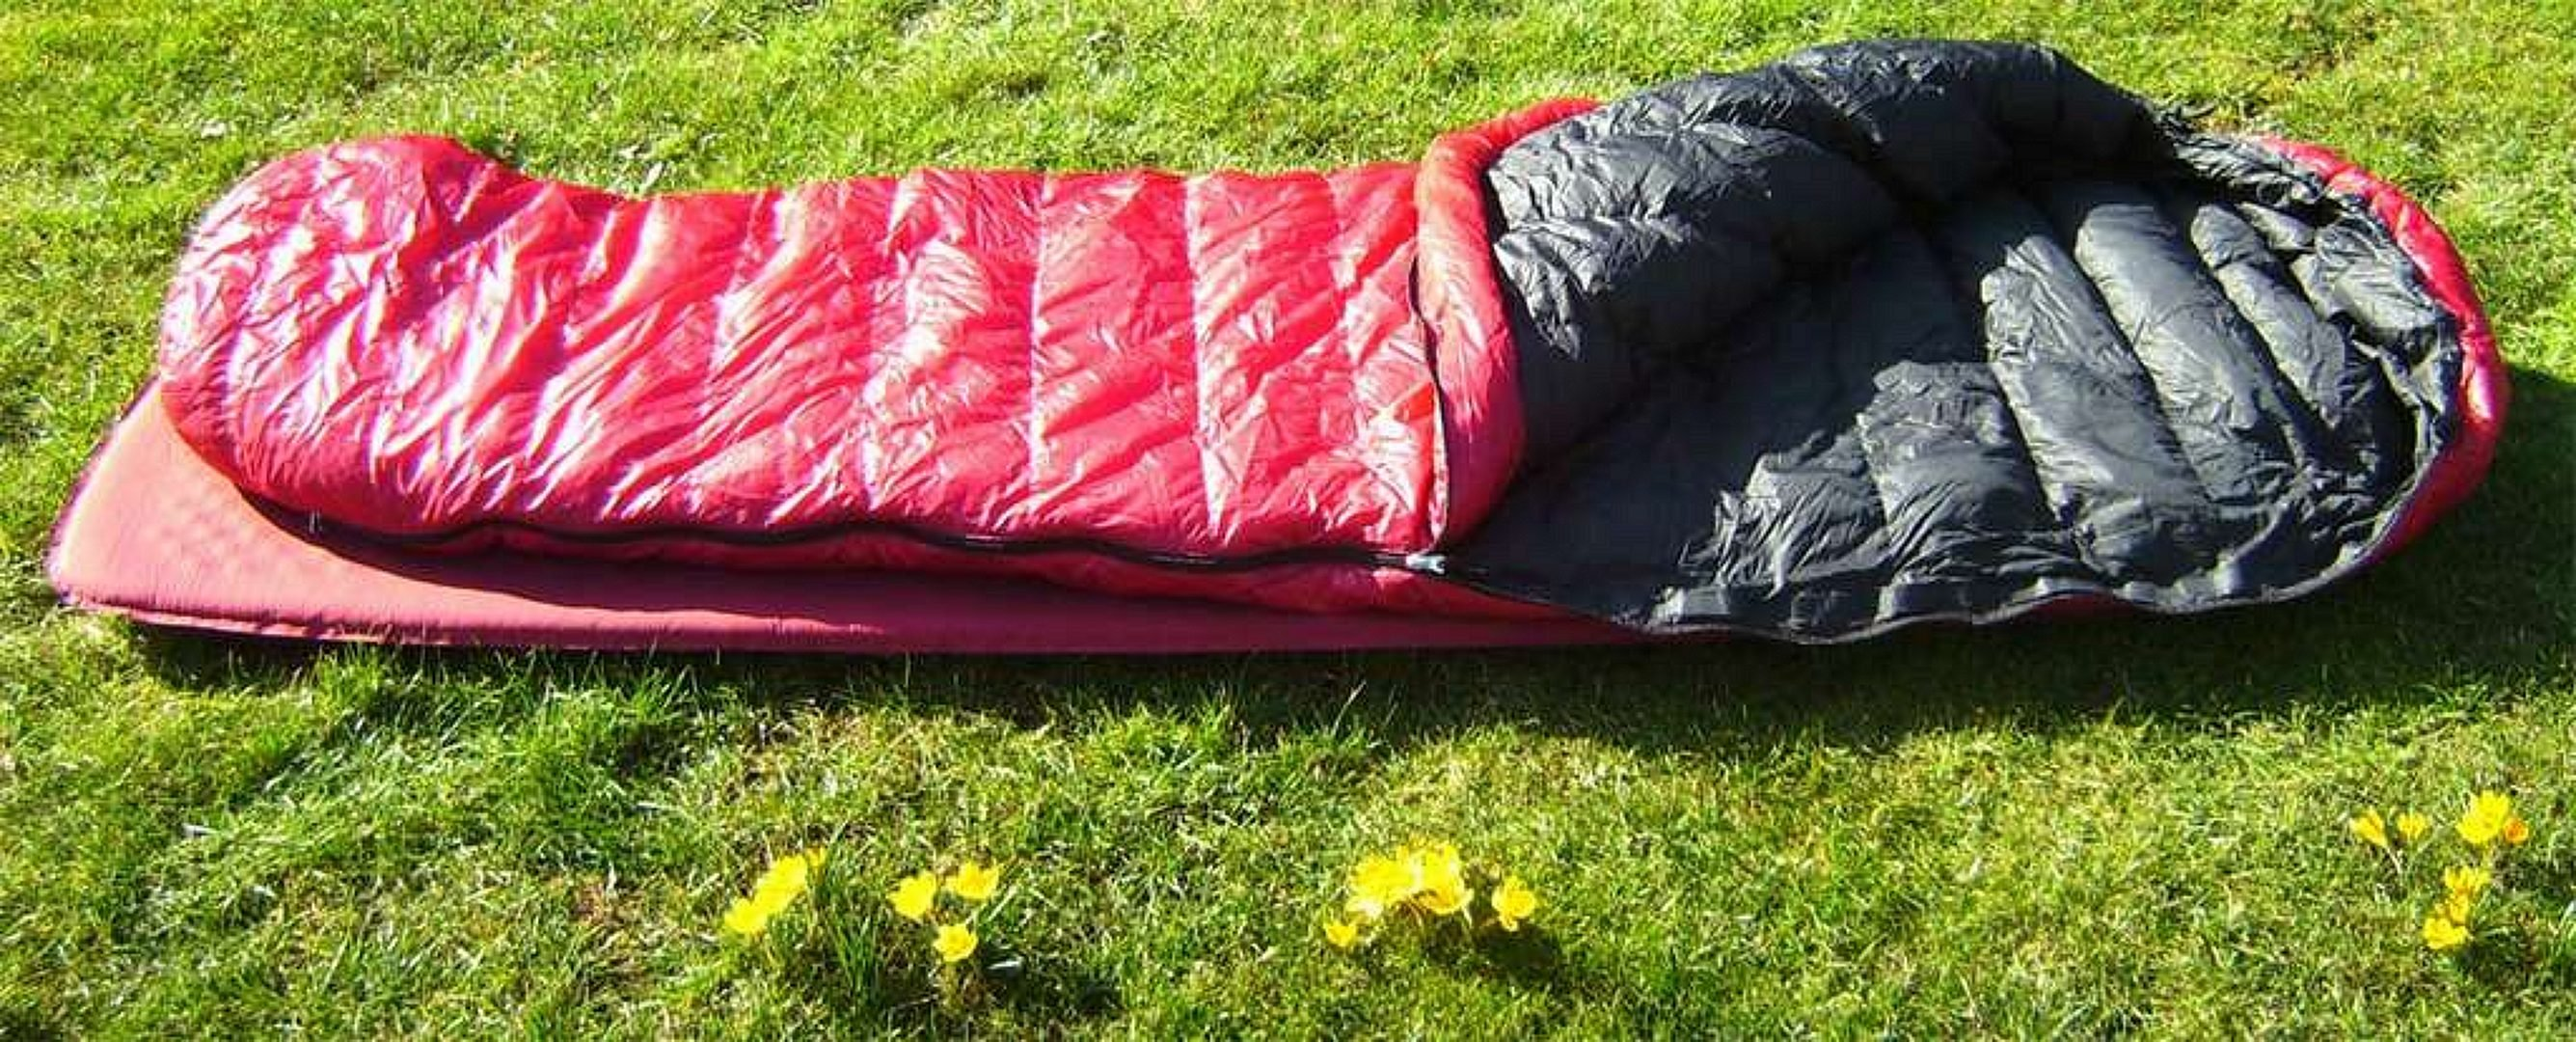 Western Mountaineering SUMMERLITE sleeping bag on the grass Western Mountaineering SUMMERLITE Review